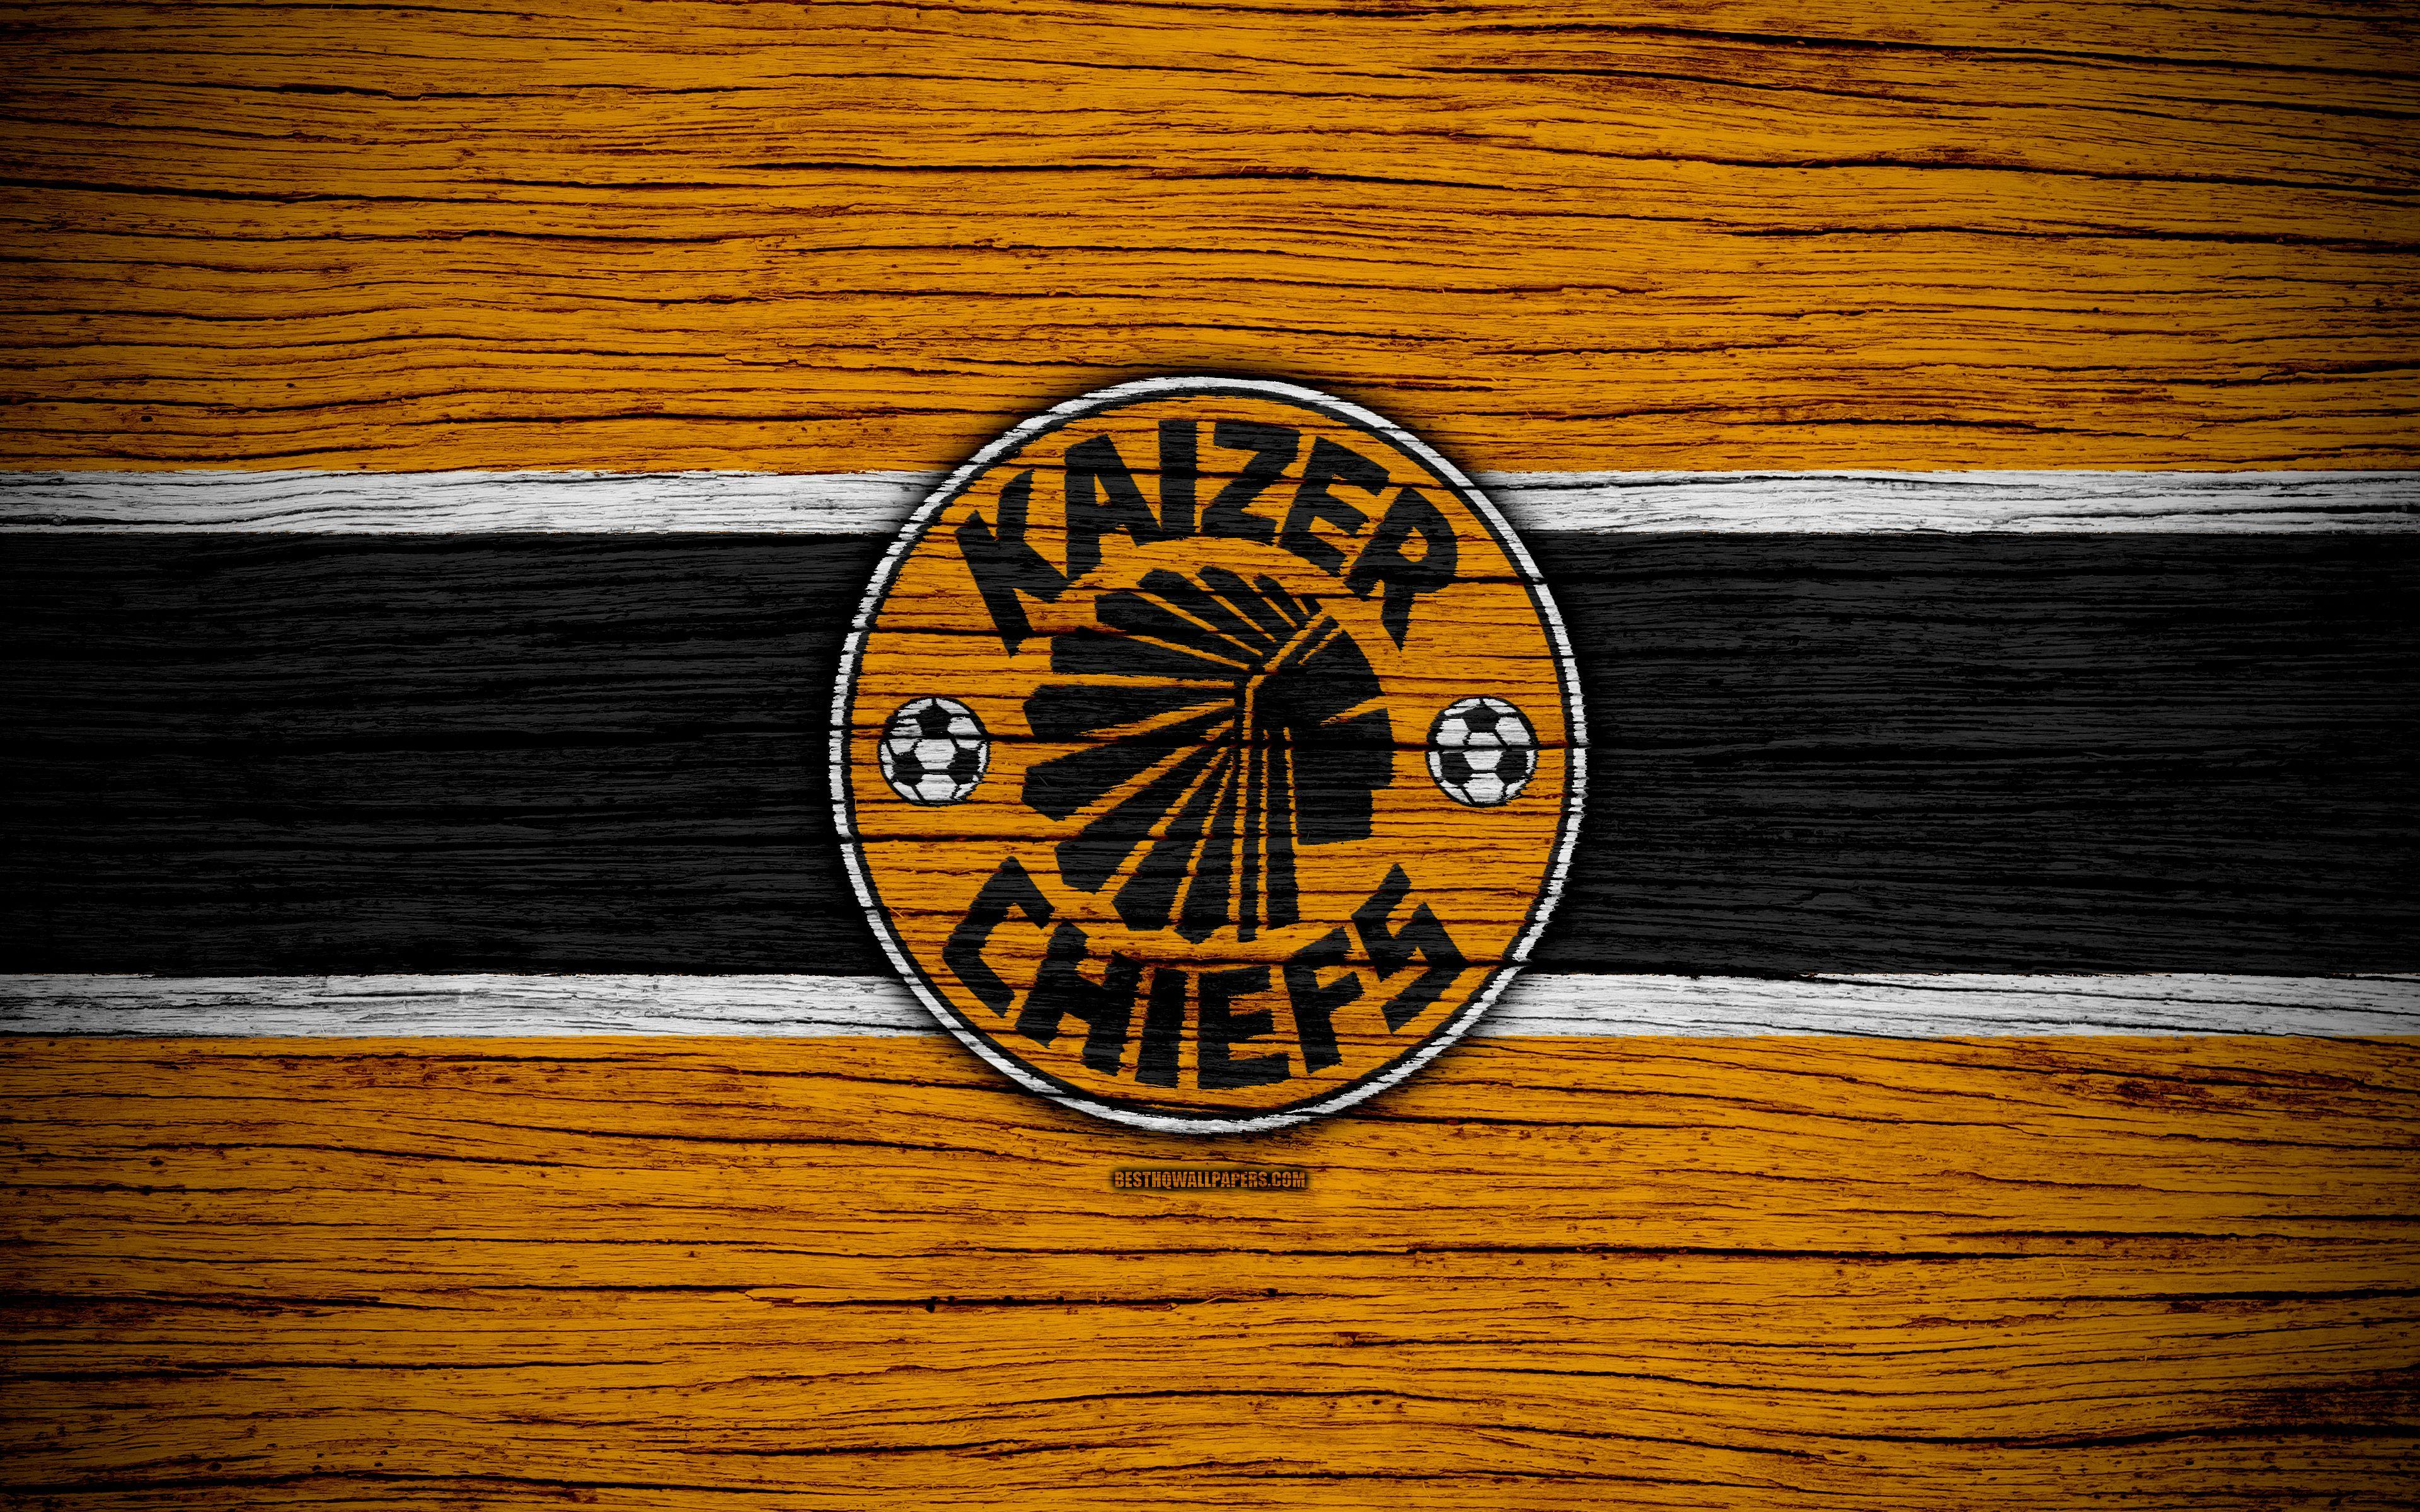 Kaizer Chiefs F C Wallpapers Wallpaper Cave